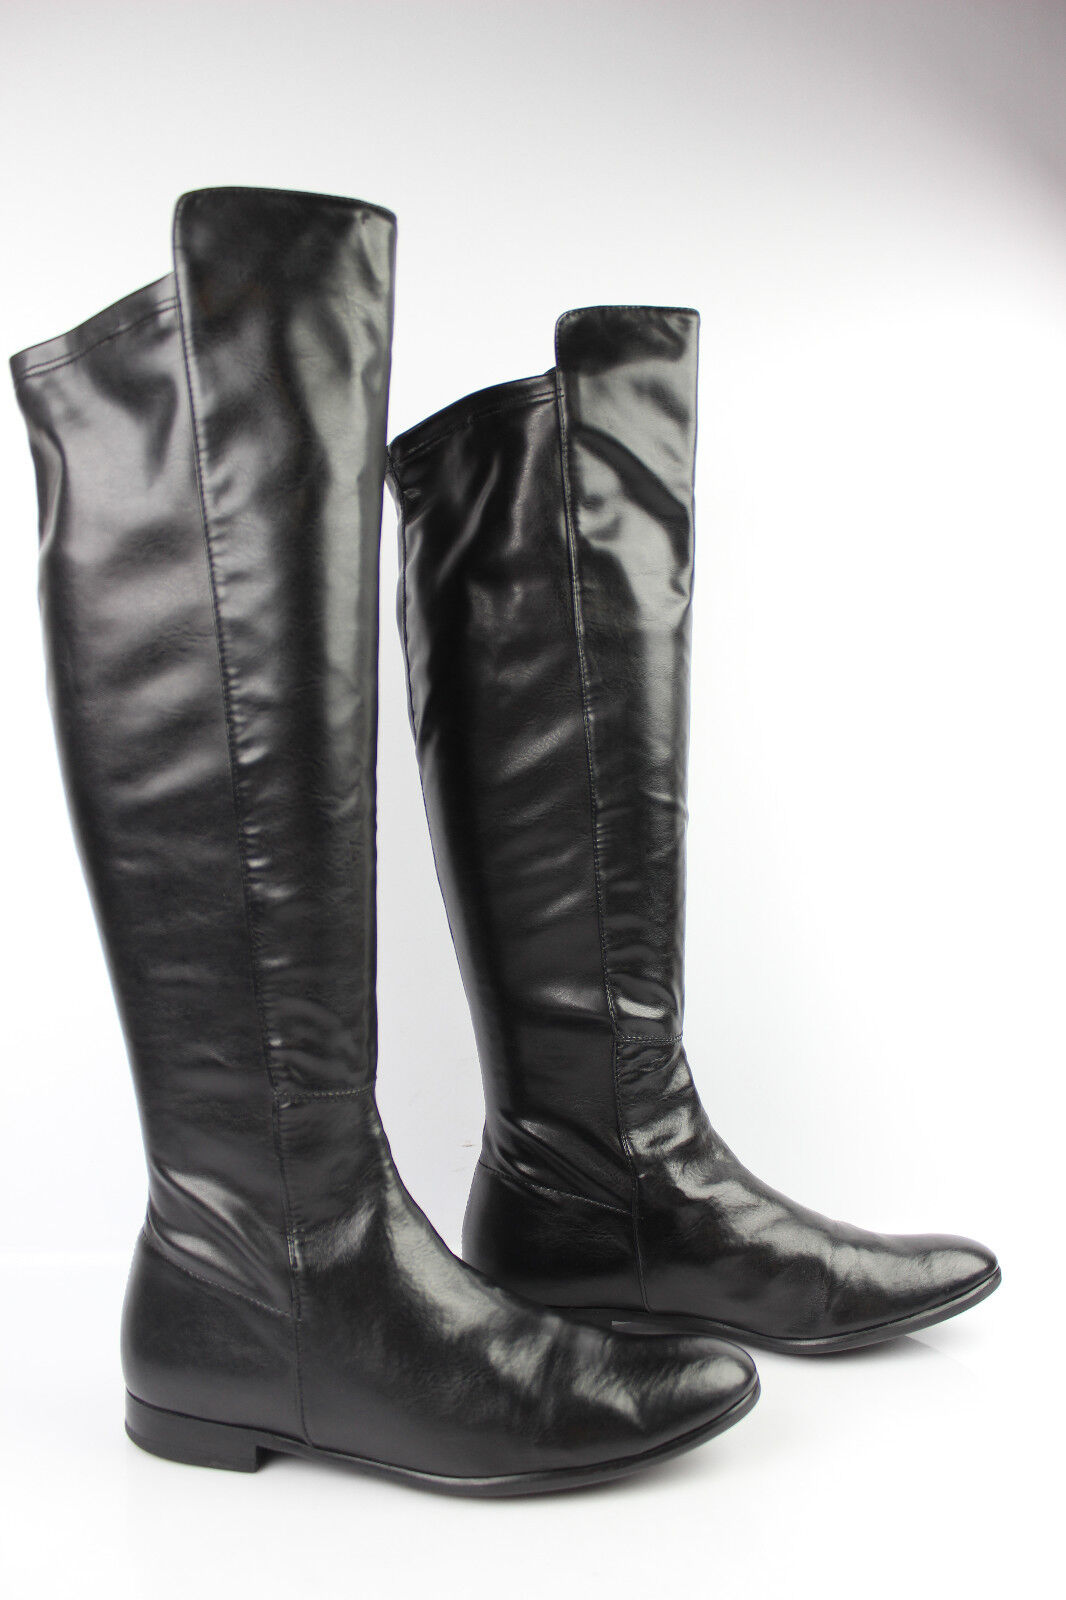 Boots LINEA AZZURRA Leather way Strechy and Black T 39 VERY GOOD CONDITION